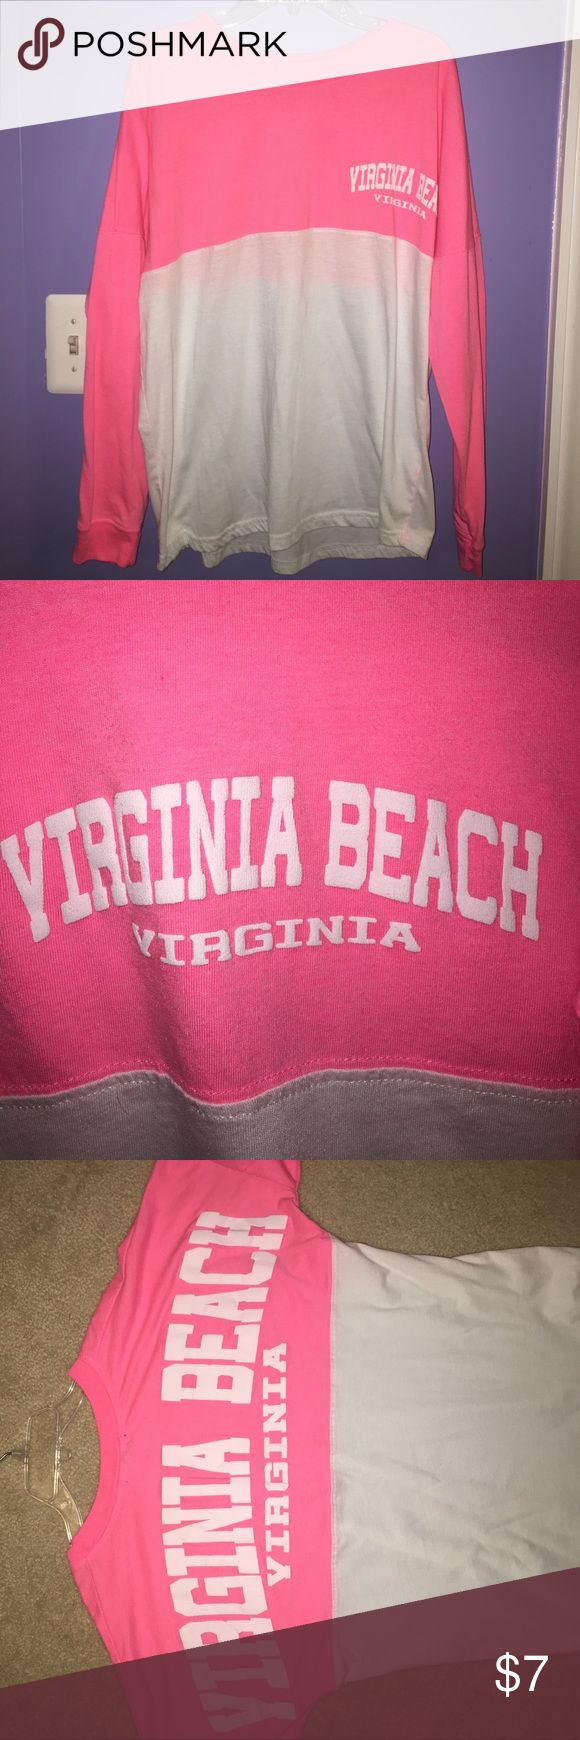 Virginia Beach Spirit Jersey Long-sleeve pink and white VA Beach spirit jersey. Only worn a few times, but does have hole on side (pictured) that could easily be stitched up!                                            📦SAME OR NEXT DAY SHIPPING📦.                                       ❌No trades, thank you!❌.                                                       💸10% off 2+ bundles!💸 Basix Of America Tops Tees - Long Sleeve